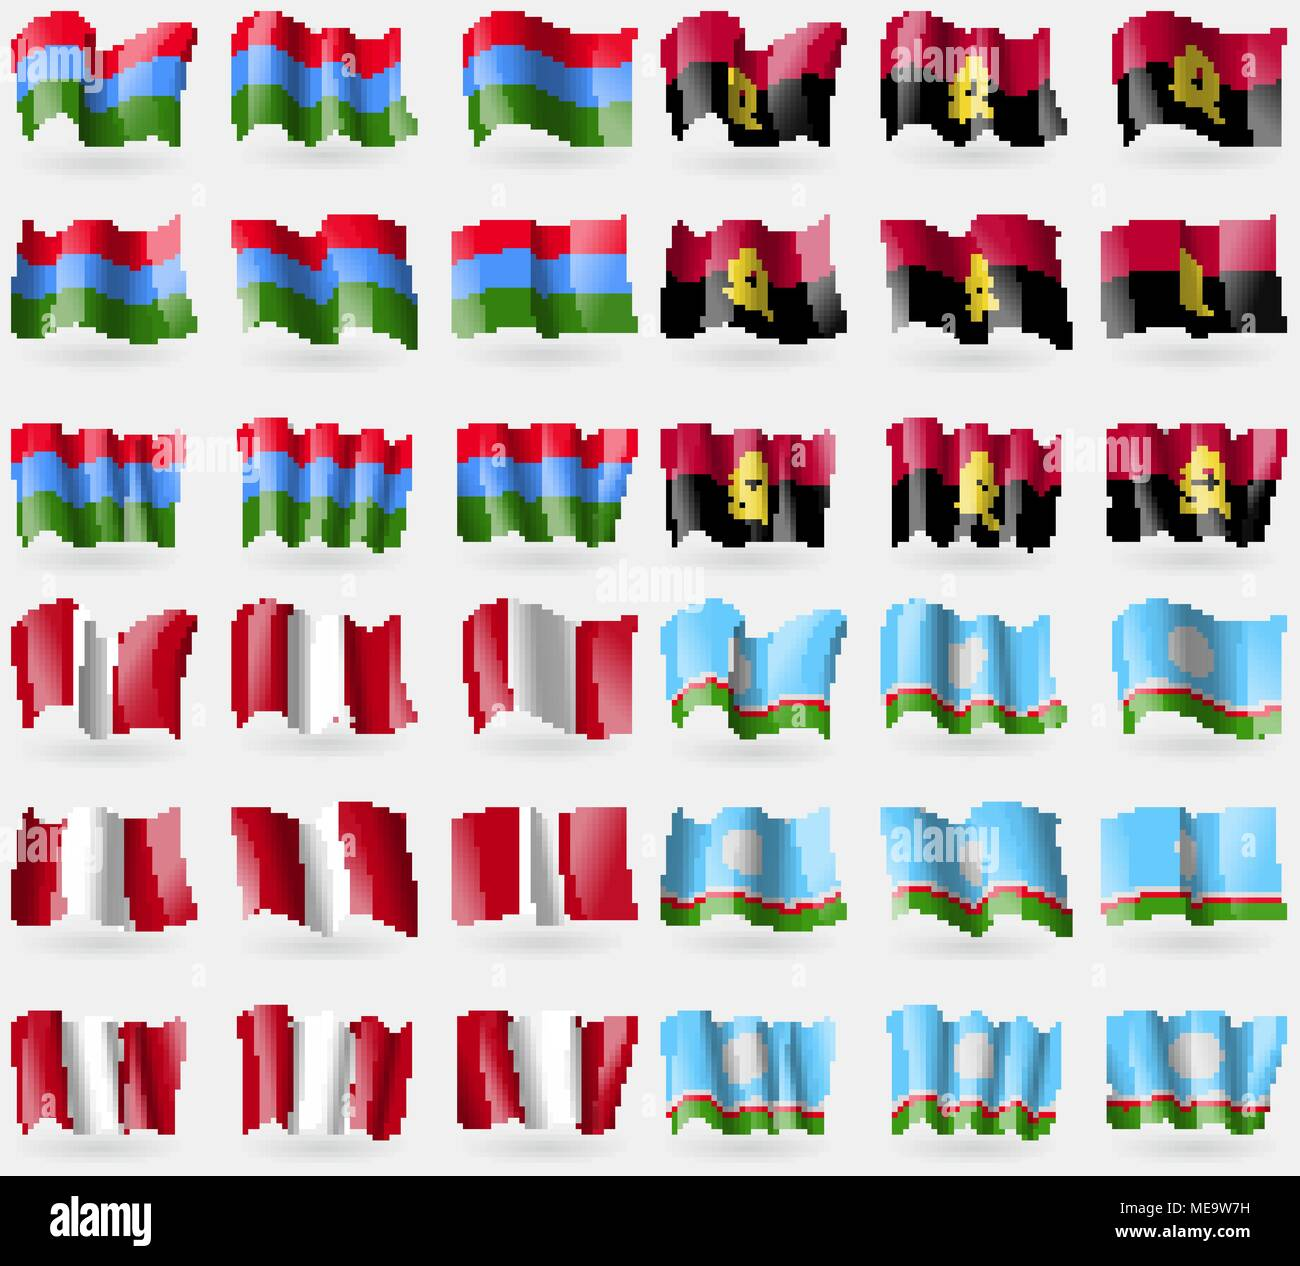 Karelia, Angola, Peru, Sakha Republic. Set of 36 flags of the countries of the world. Vector illustration - Stock Image